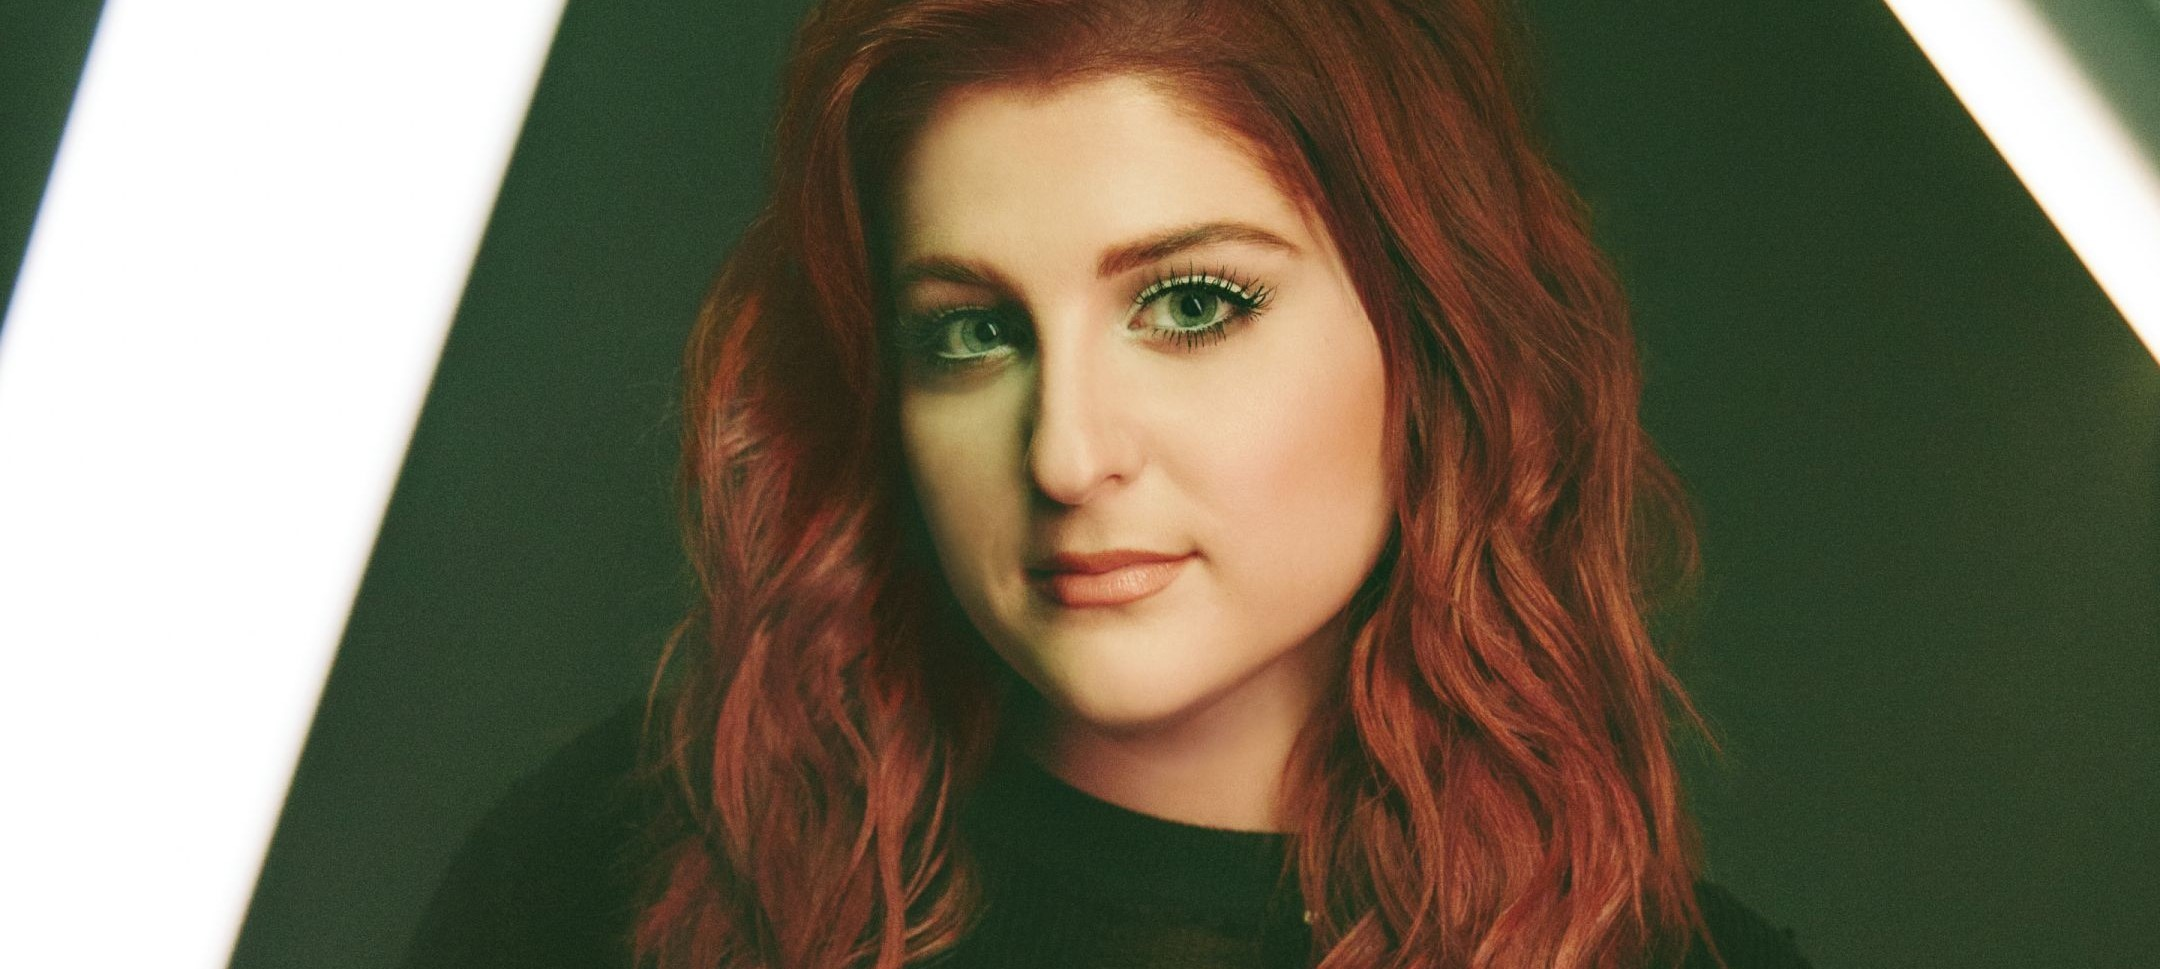 GRAMMY WINNING ARTIST, MEGHAN TRAINOR RELEASES NEW ALBUM 'THANK YOU'!